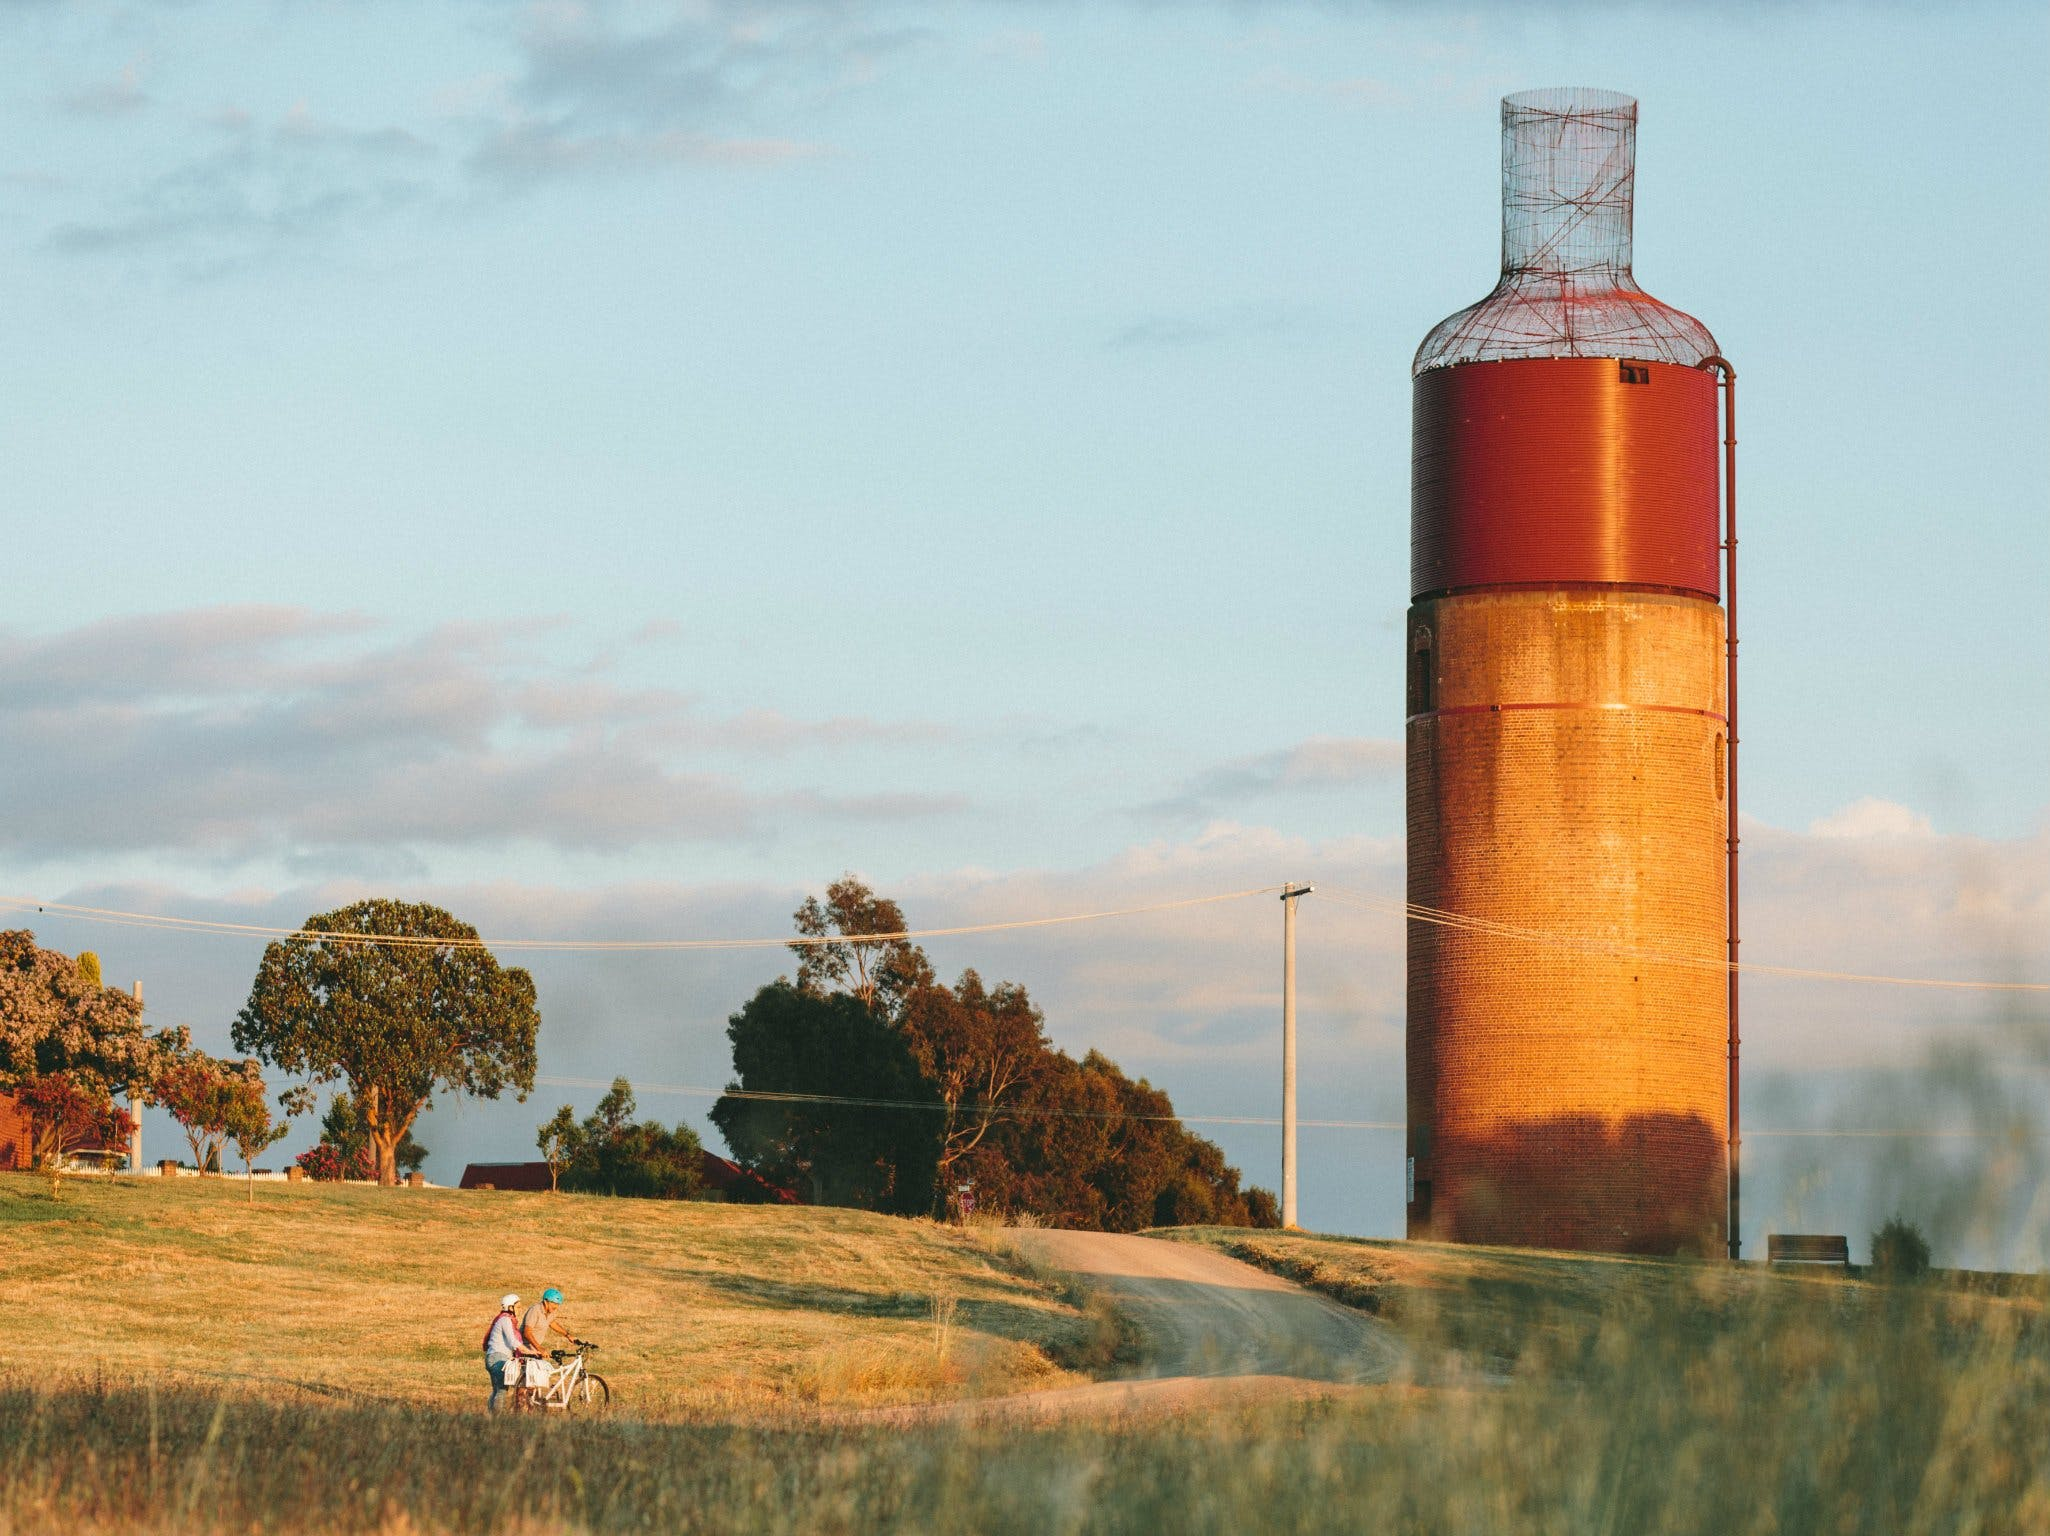 Rutherglen Wine Bottle - Attractions Brisbane